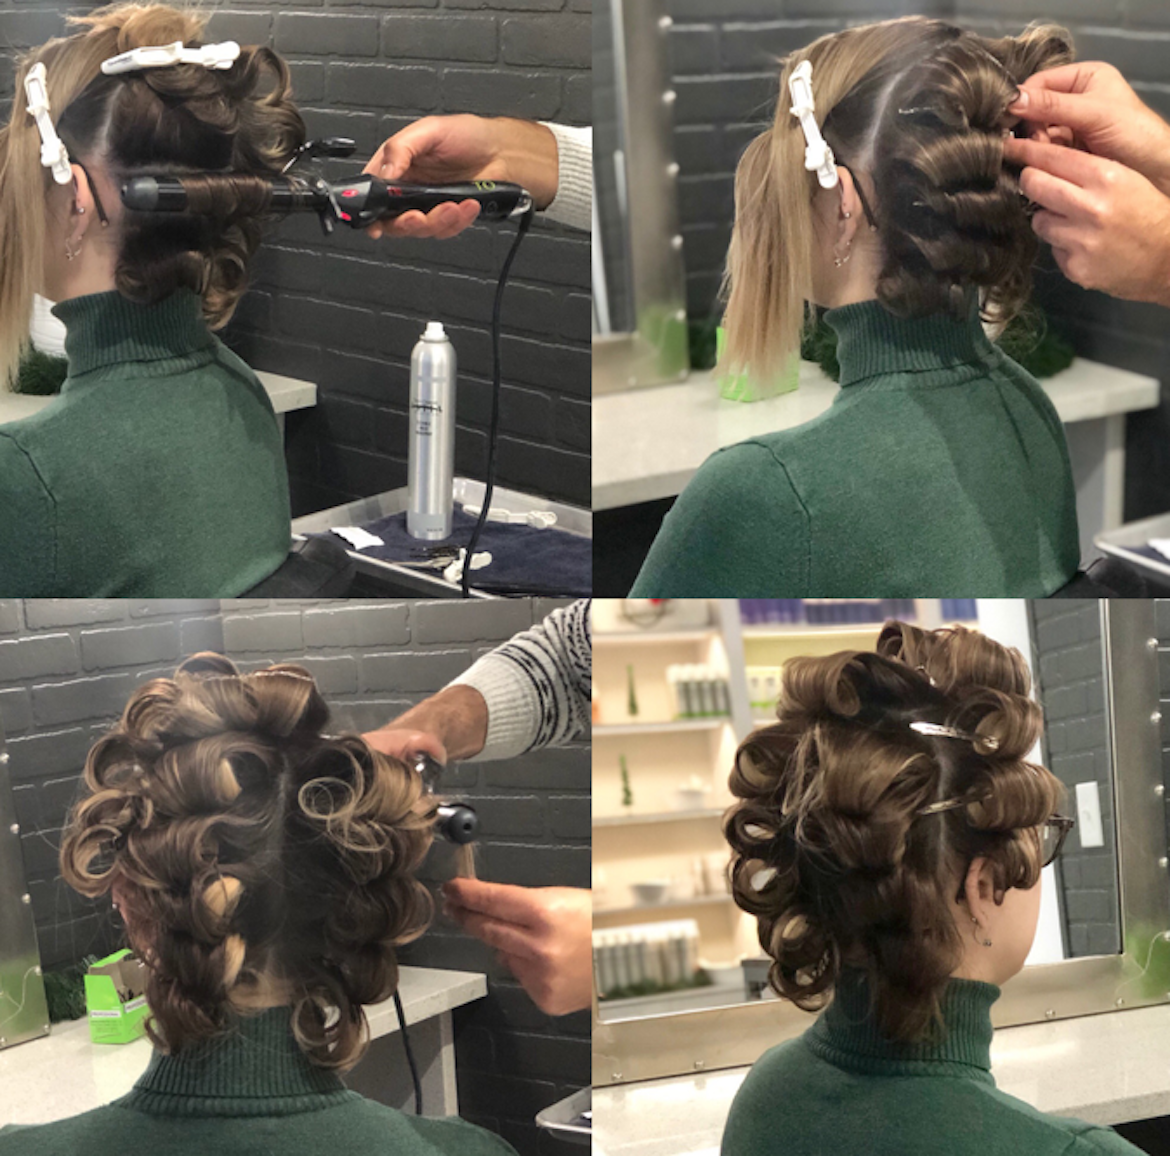 Old Hollywood glamour vintage hair tutorial creating loops with curling tongs